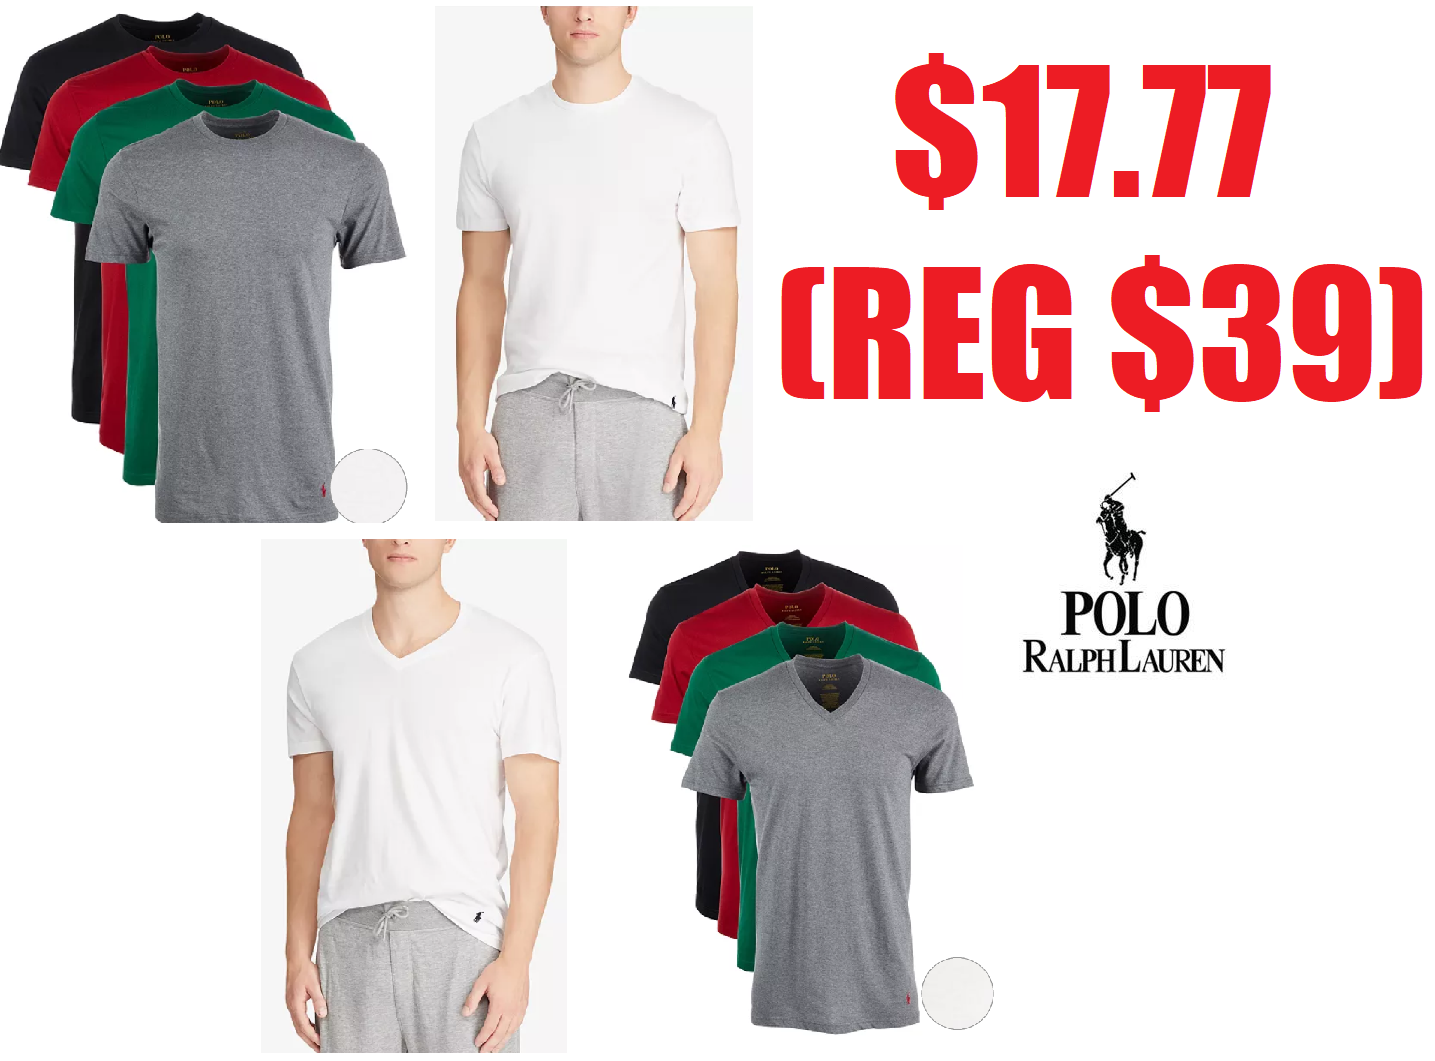 6baa0e317 4 Pack Polo Ralph Lauren Men's Classic-Fit Cotton Crew Neck T-Shirts or V-Neck  T-Shirts in White or Assorted Colors $17.77 (Reg $39.50) + Free Pickup at  ...